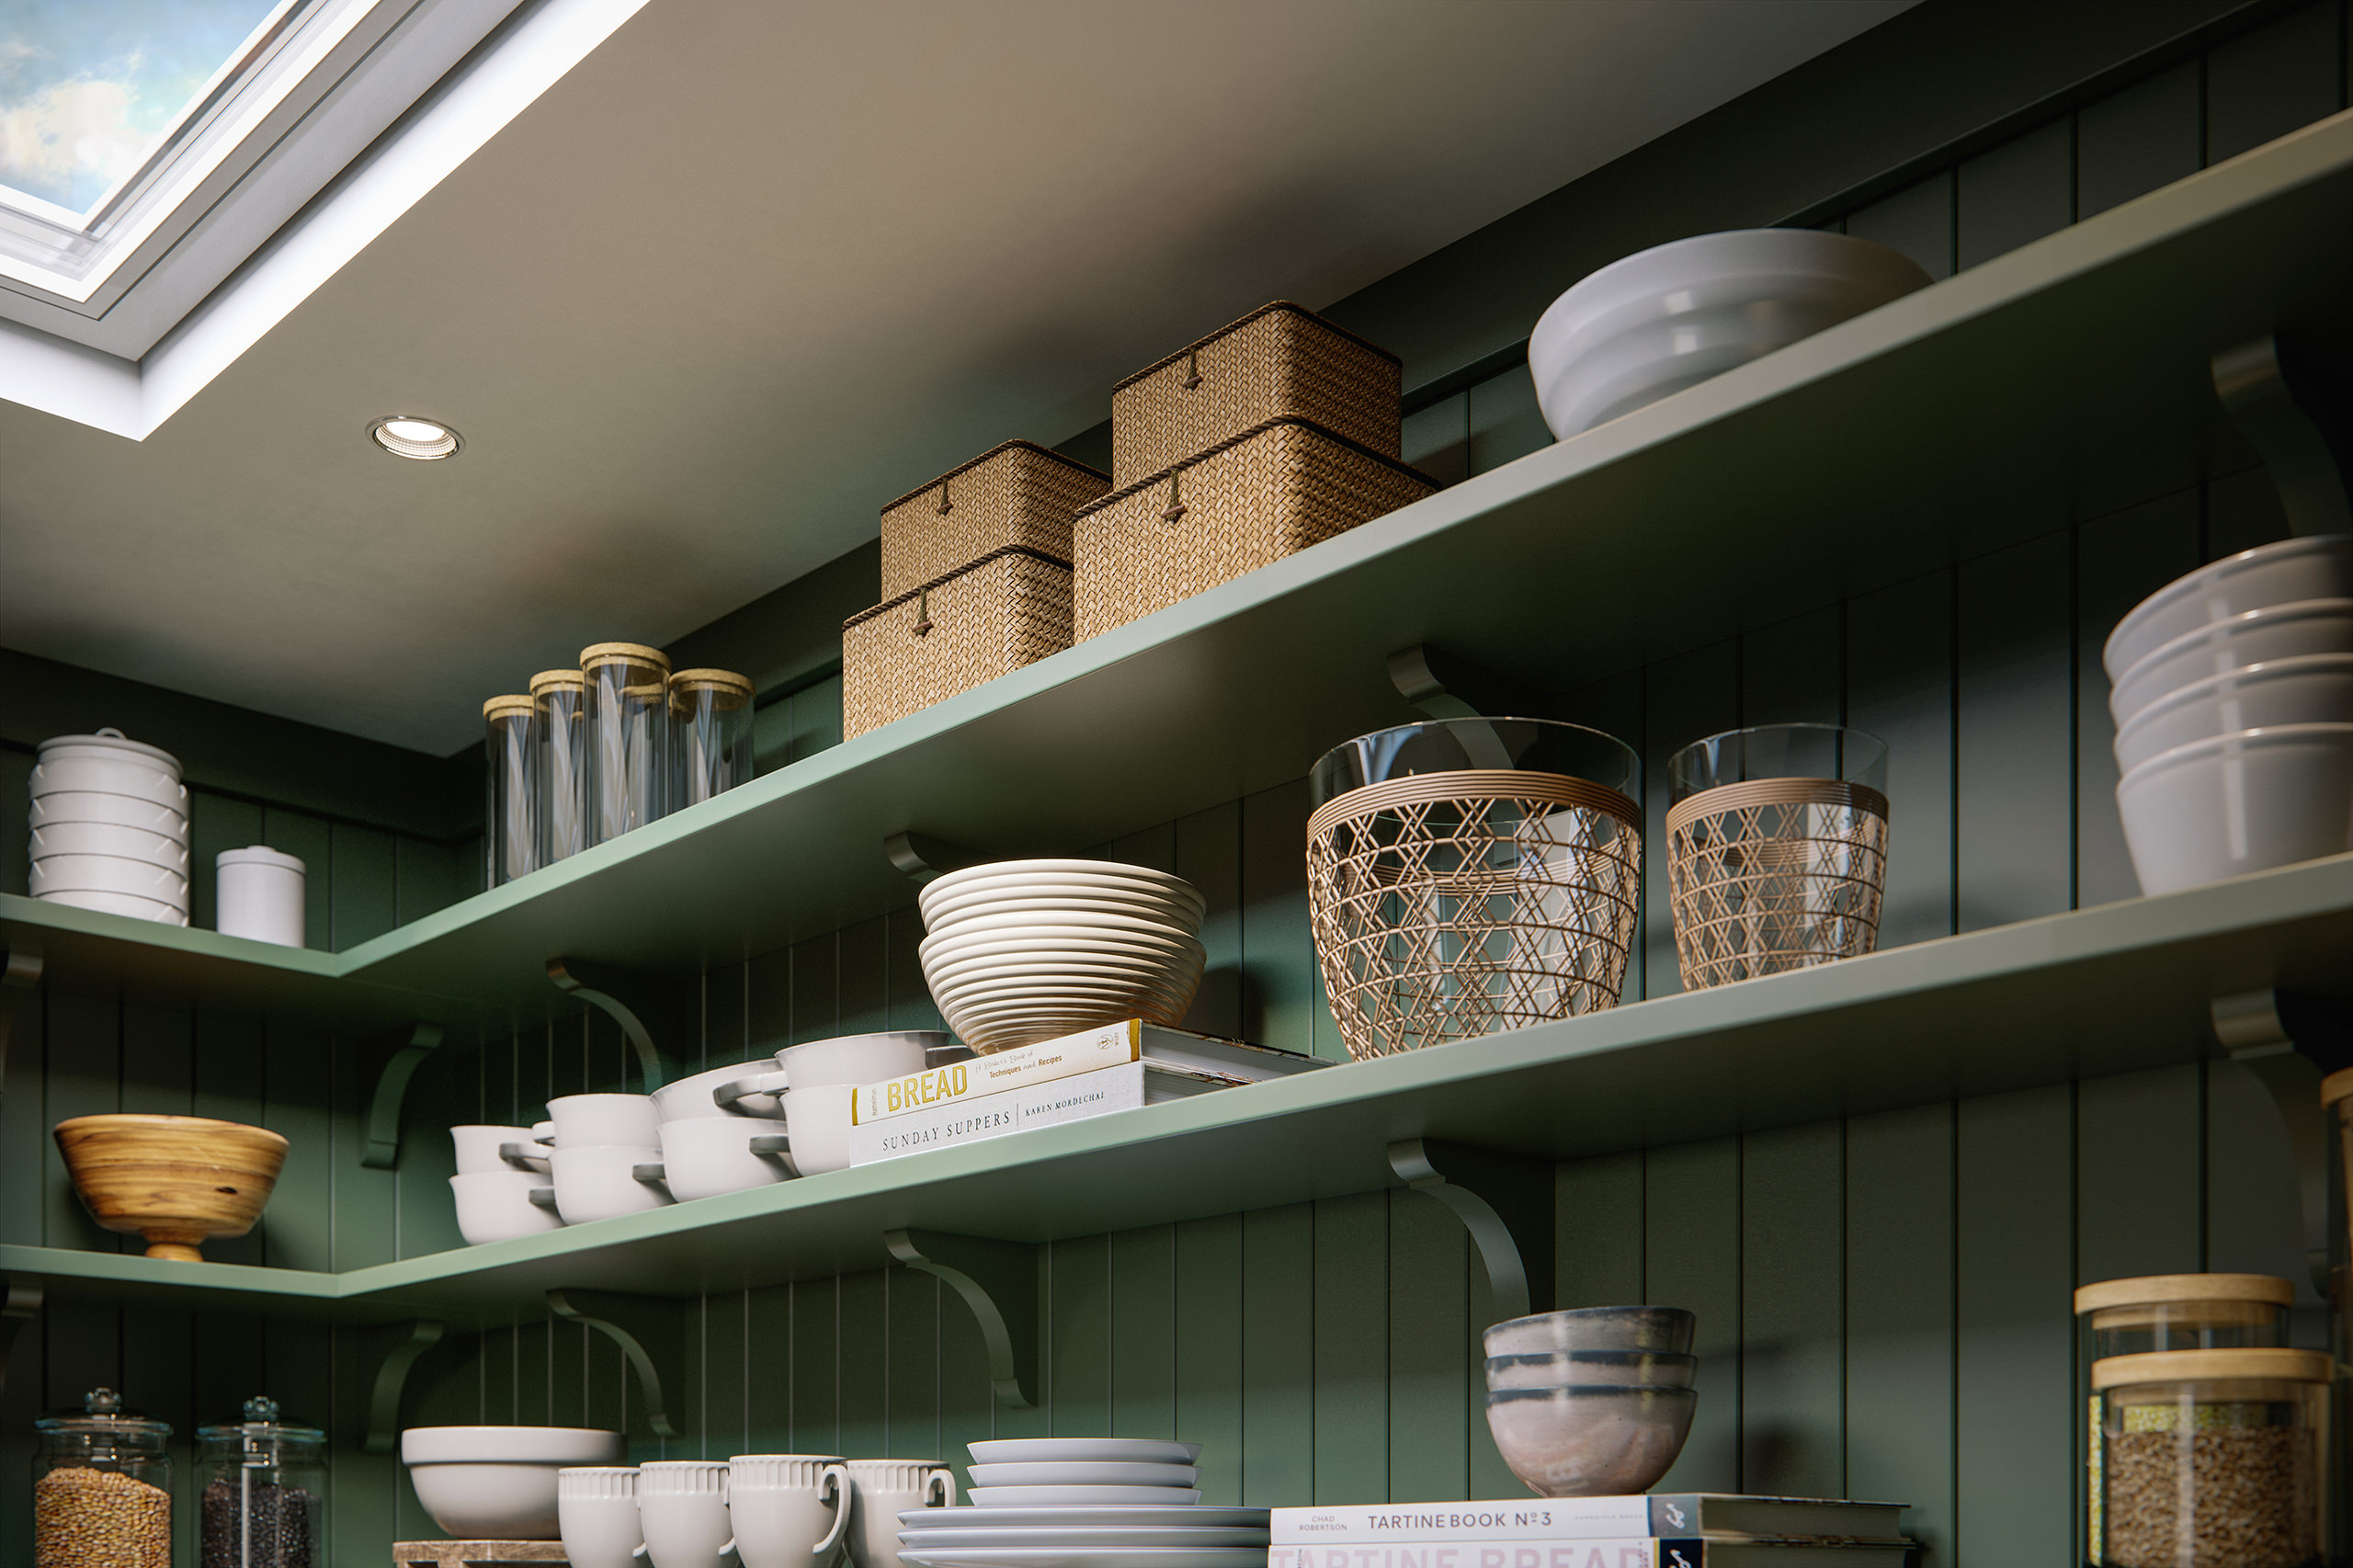 Angle 3D view of dark green shelves with kitchenware and recipe books under a skylight